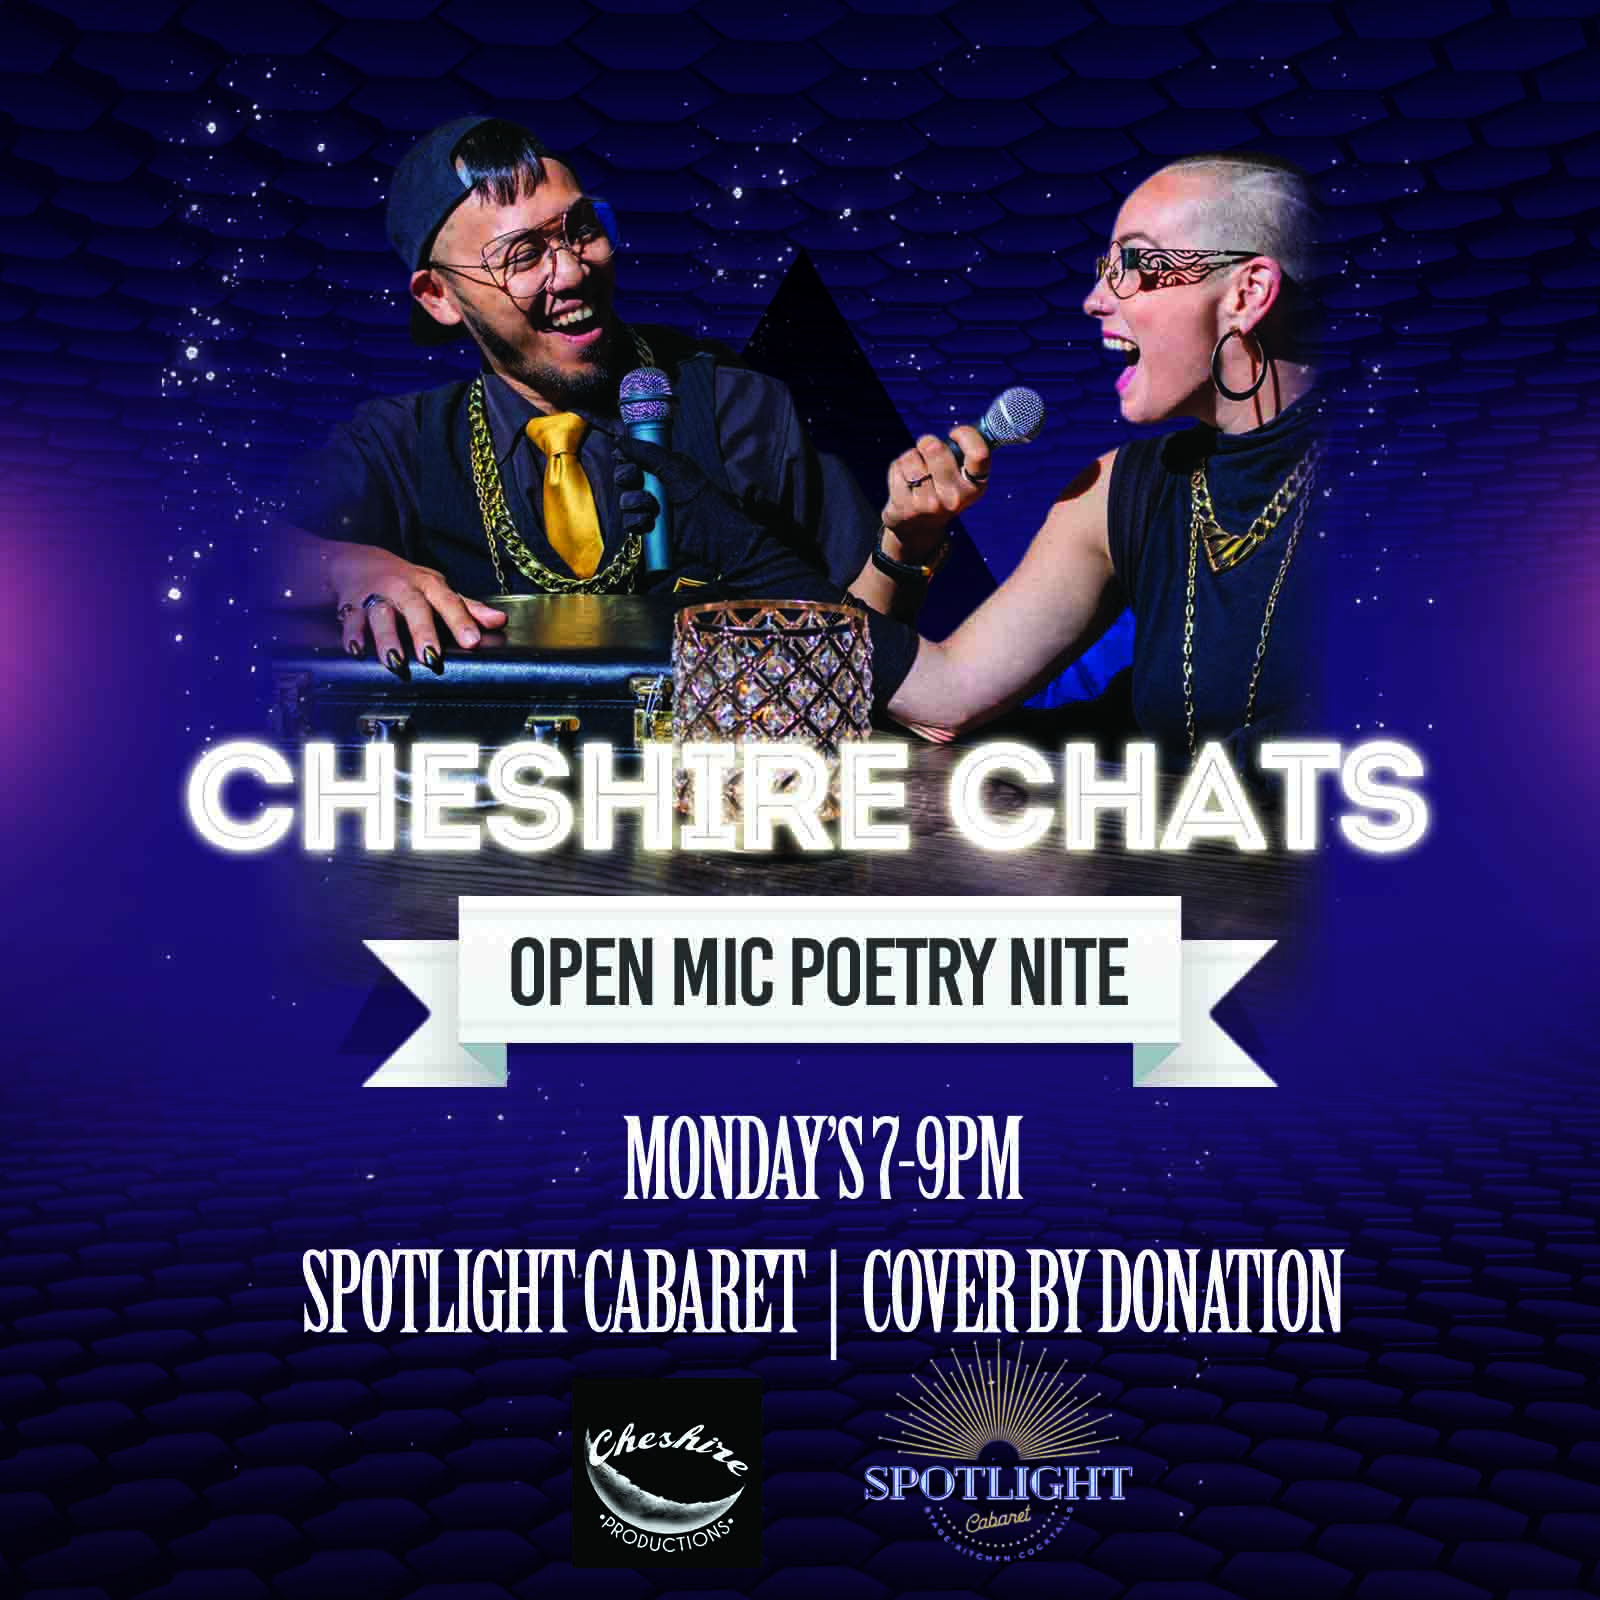 Cheshire Chats Open Mic Poetry Nite